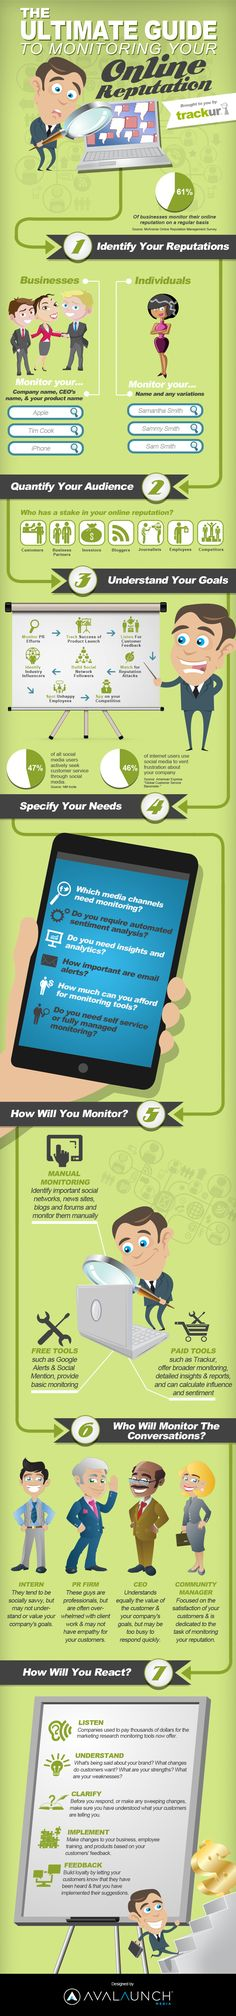 How to Monitor Your Online Reputation: If you never gave it a though prior to school, you may want to consider this now. Nursing Students may have their posts, pages, blogs, and other sites monitored by their school. Additionally, your future employers may look you up online during the hire consideration phase. Ask yourself- does my online rep portray the type of person I want to be perceived as?